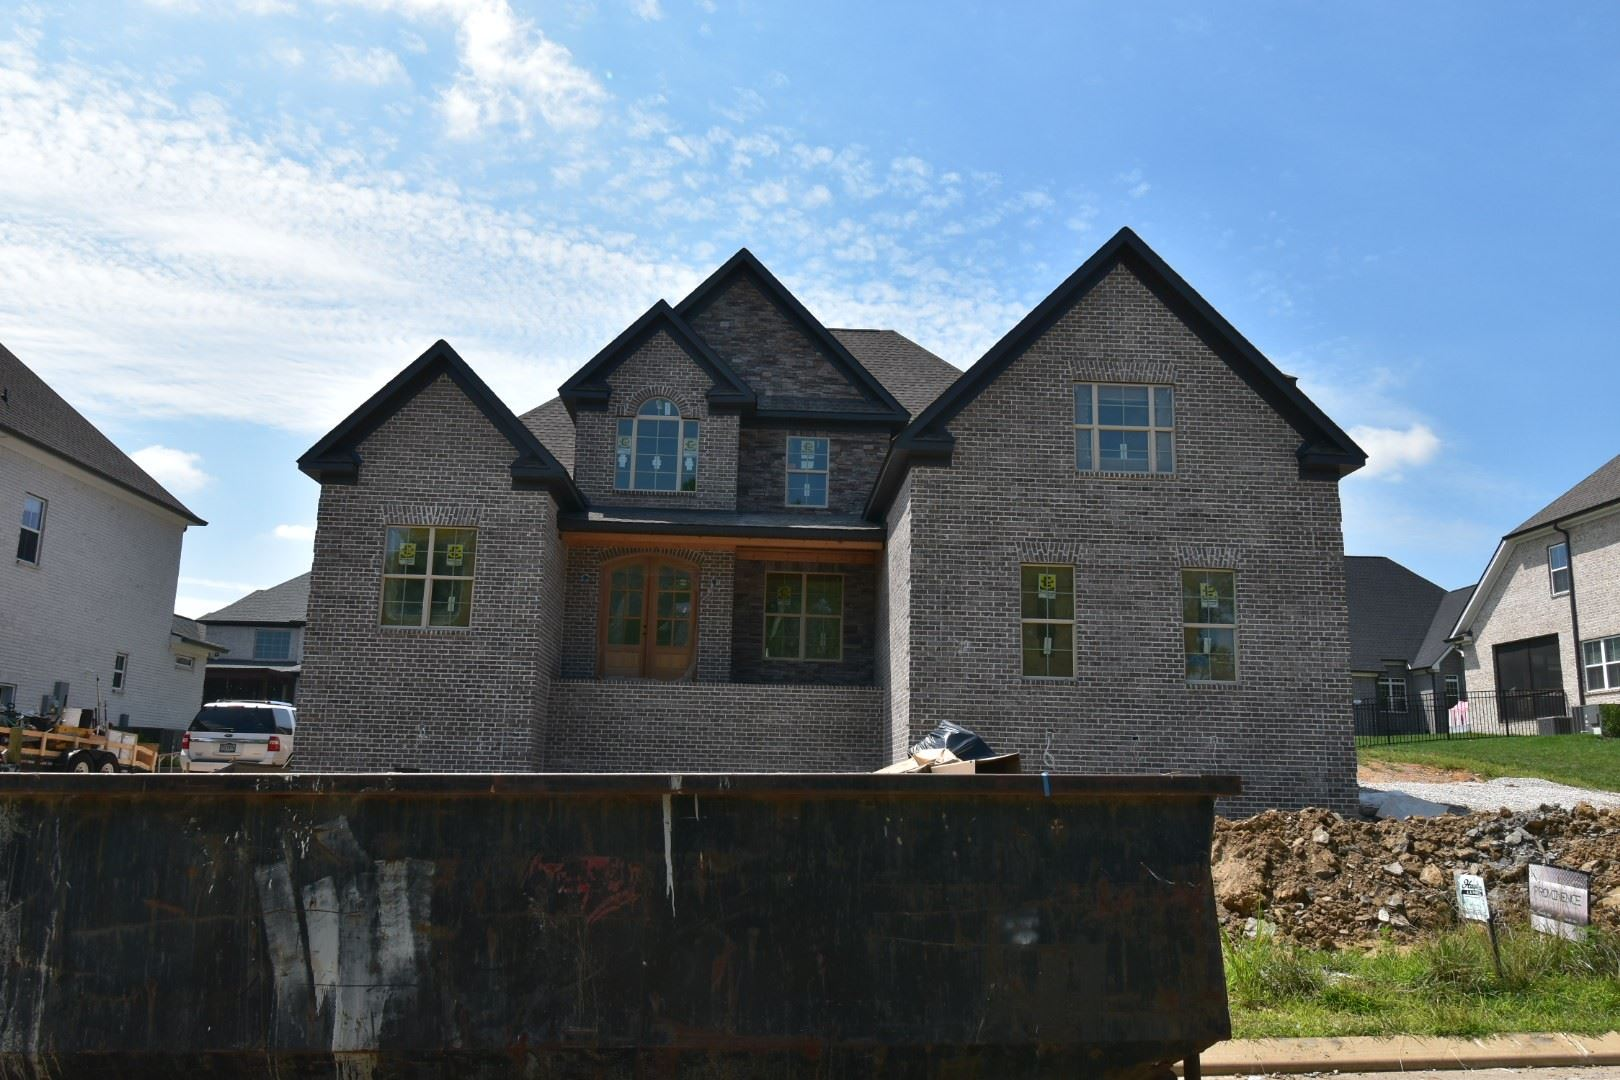 5013 Wallaby Dr (359), Spring Hill, TN 37174 - MLS#: 2164564